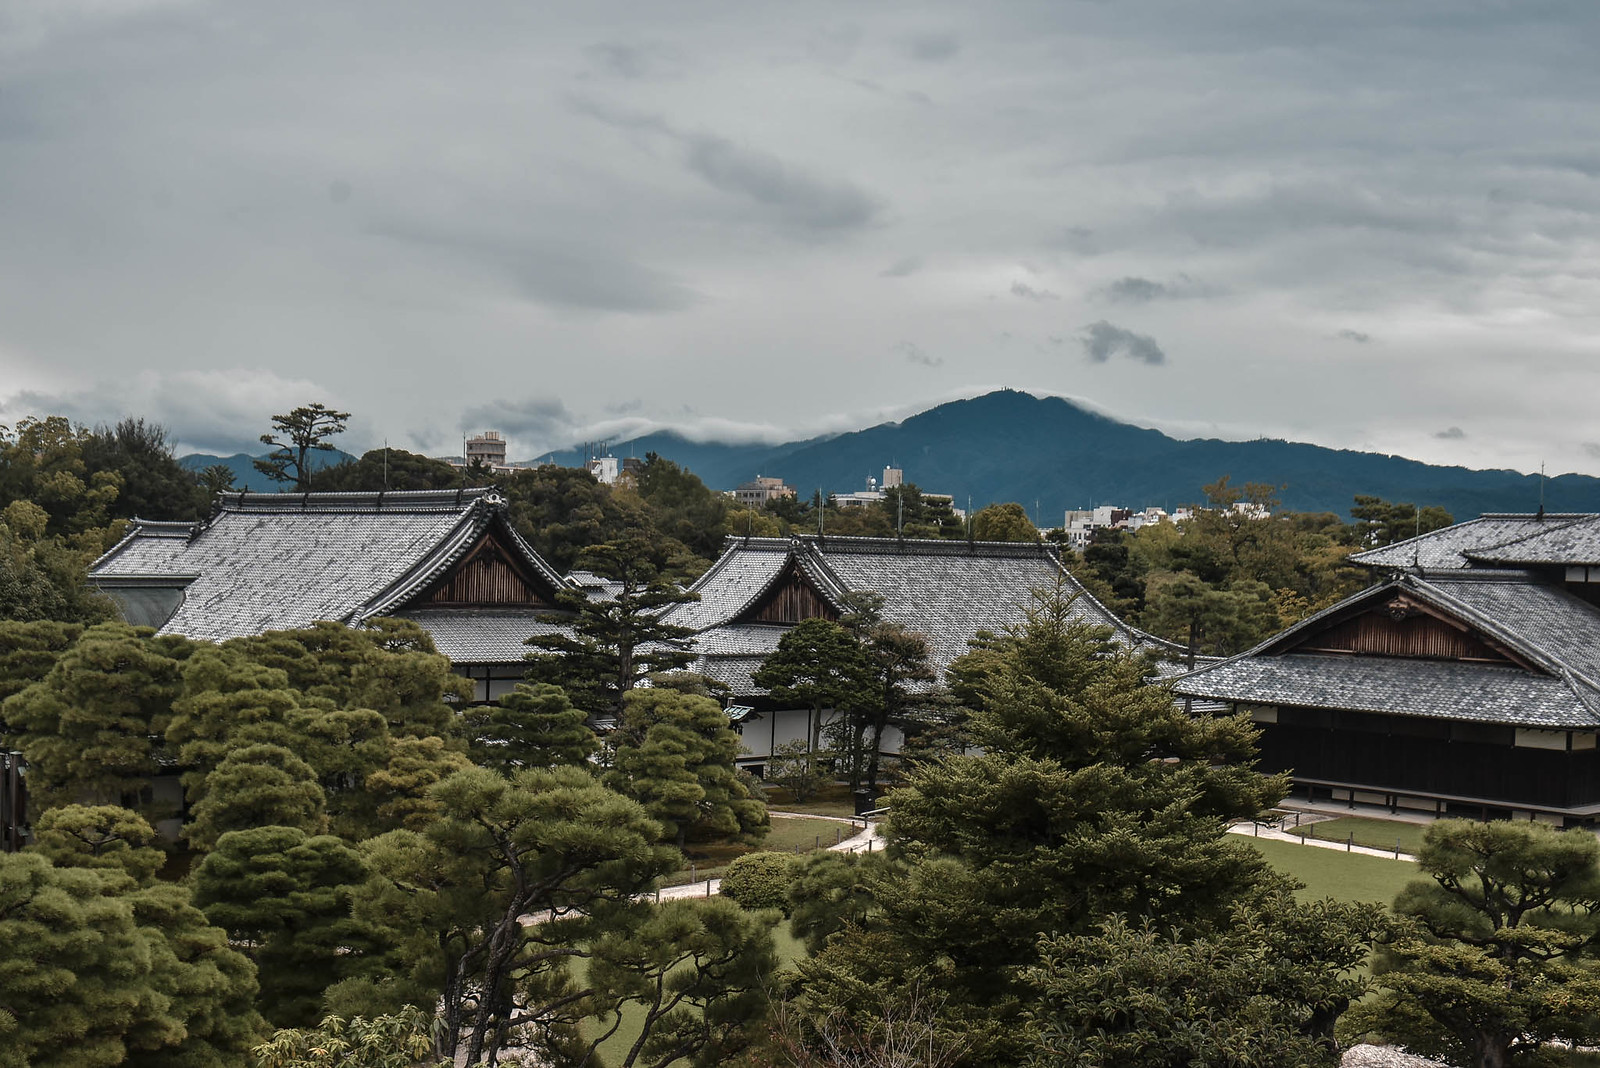 kyoto nijo castle 4 (1 of 1)